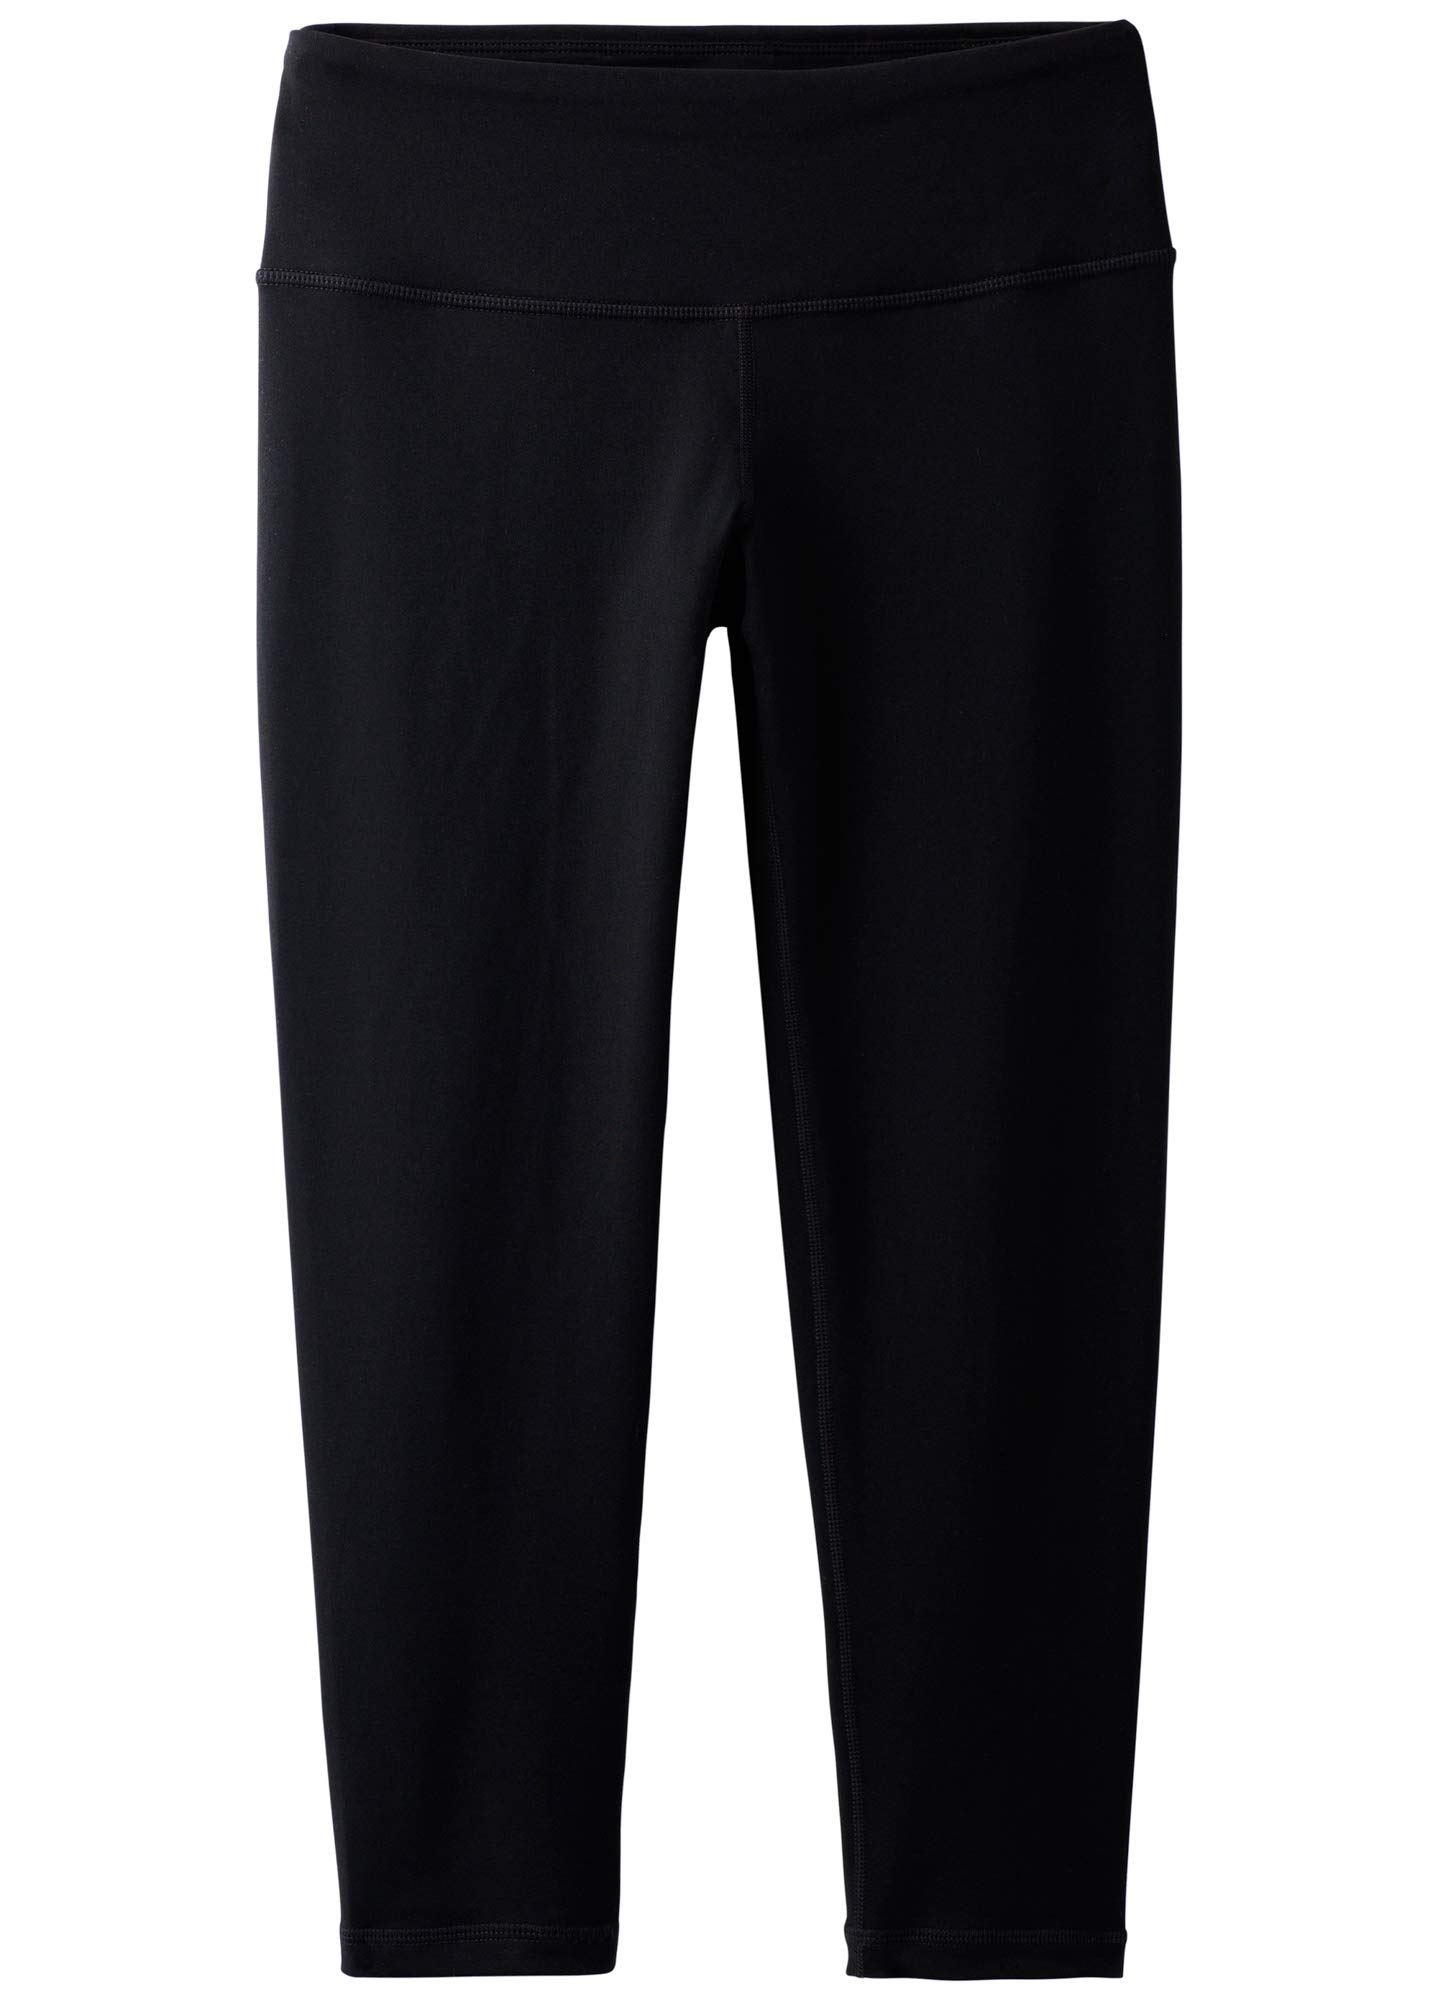 prAna Women's Pillar Capri, Black, X-Small by prAna